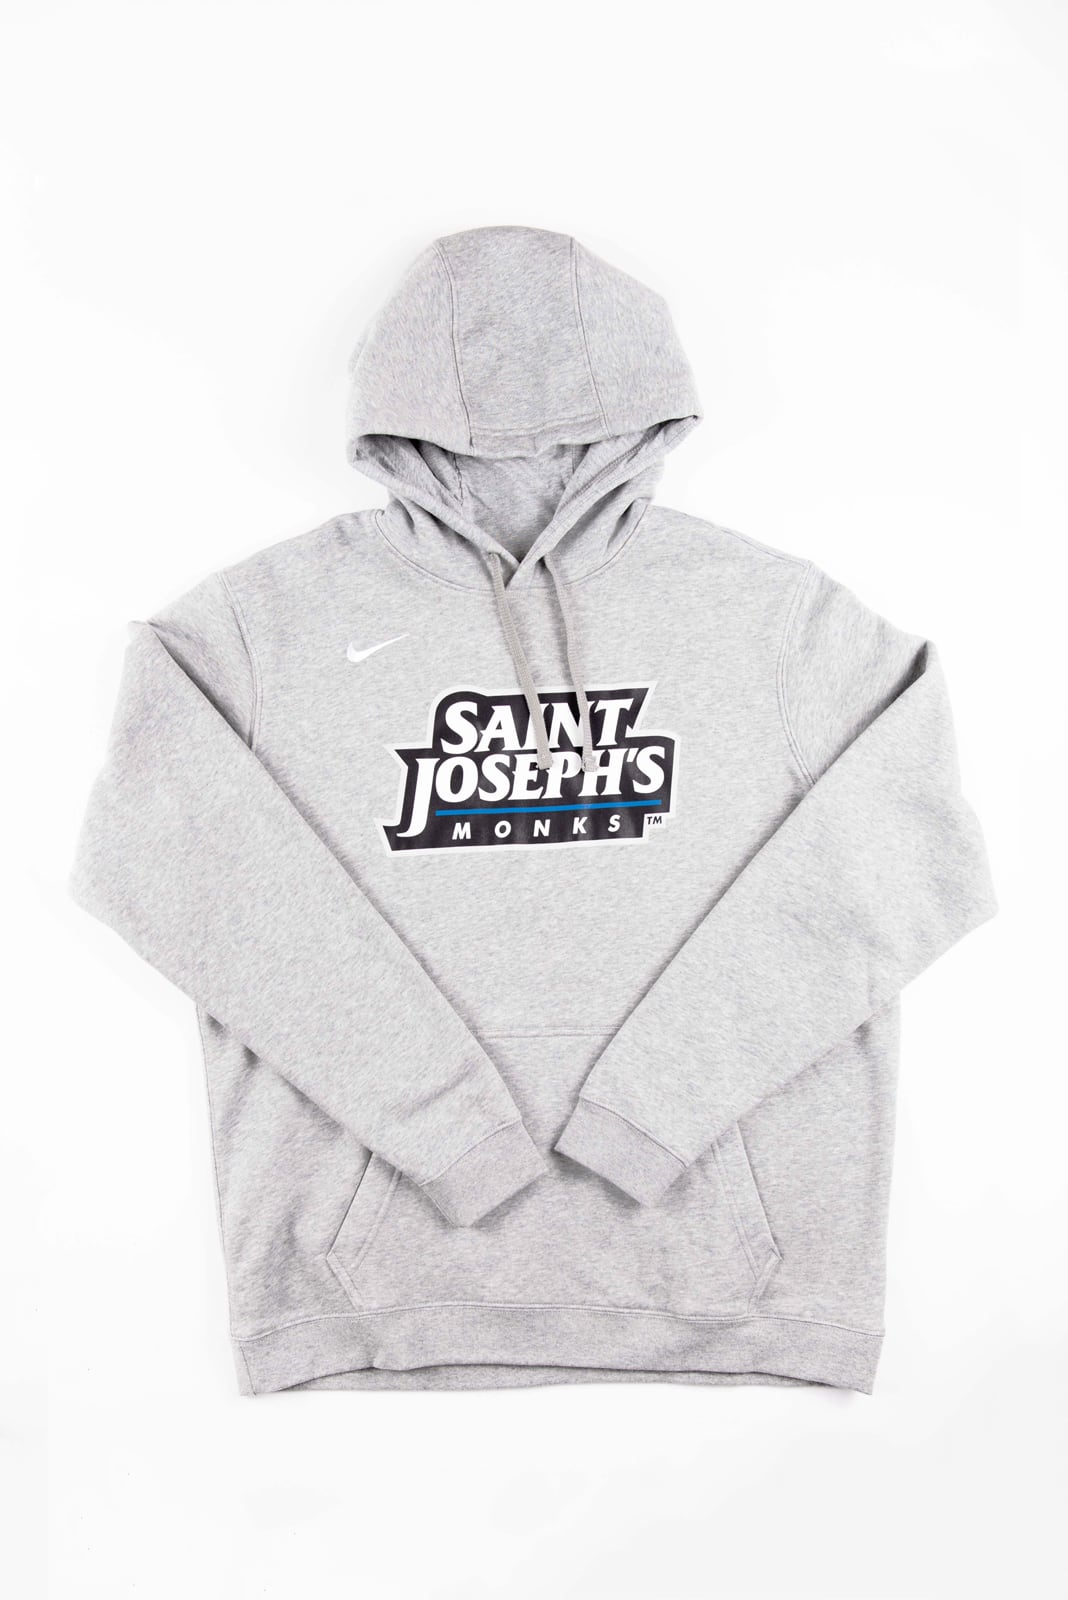 Saint Joseph's Monks - Grey Nike Hoodie